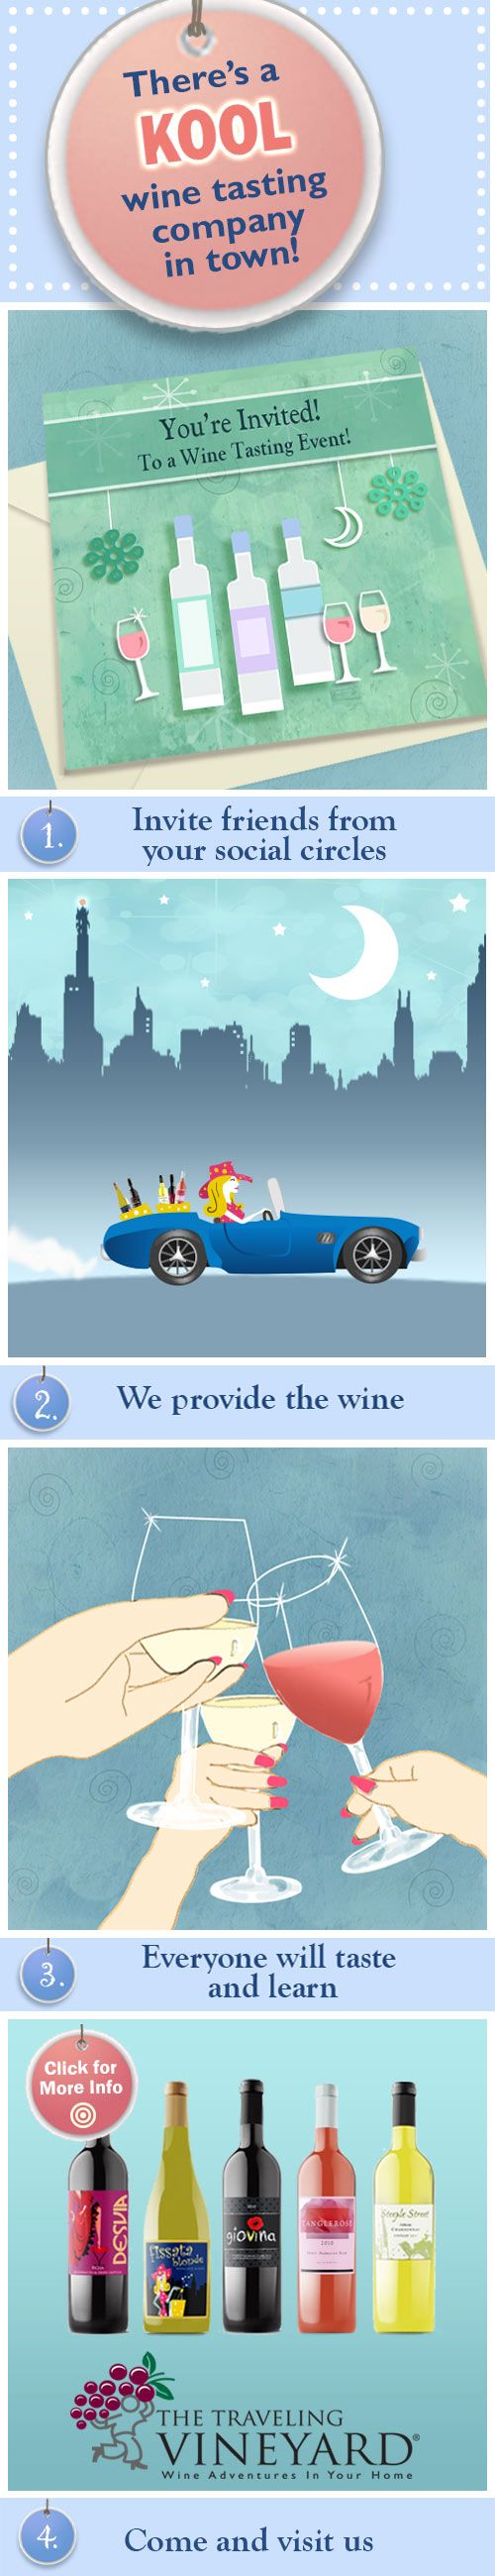 We'd like to organize YOUR very own free home wine tasting with The Traveling Vineyard. Click on this to make it happen !  http://www.travelingvineyard.com/free-home-wine-tasting/